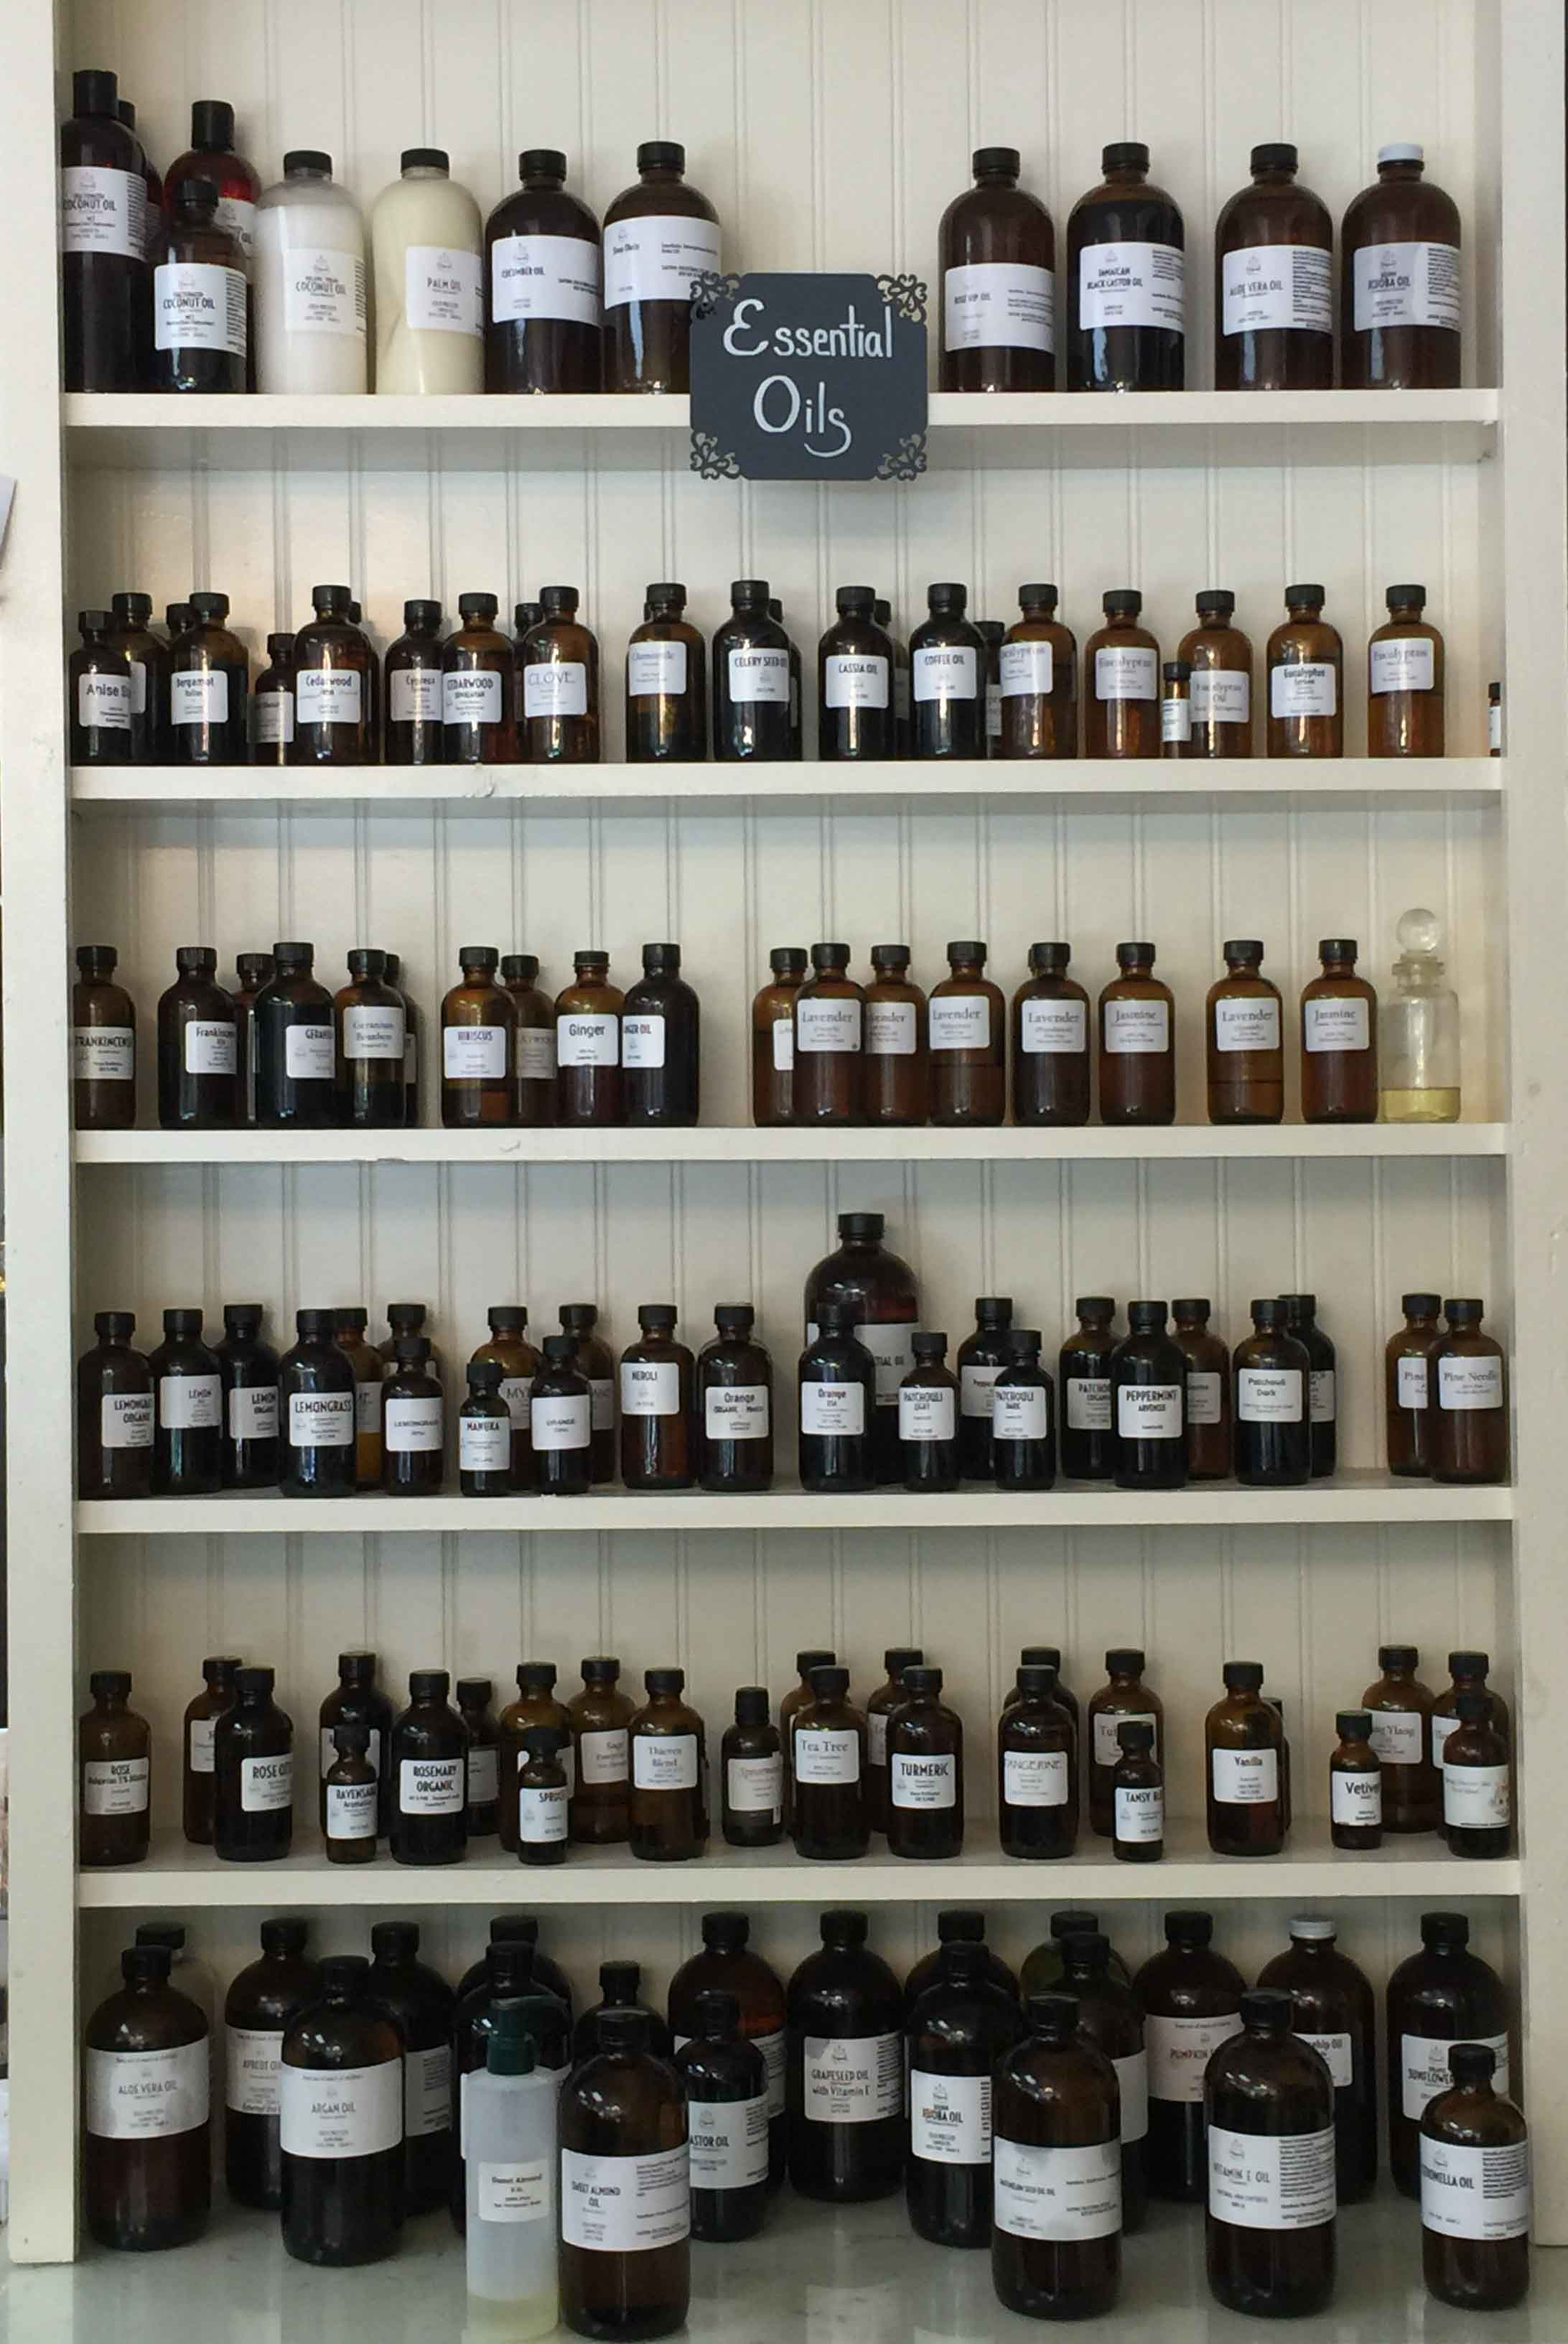 Shelf filled with Amber Bottles that carry essential oils